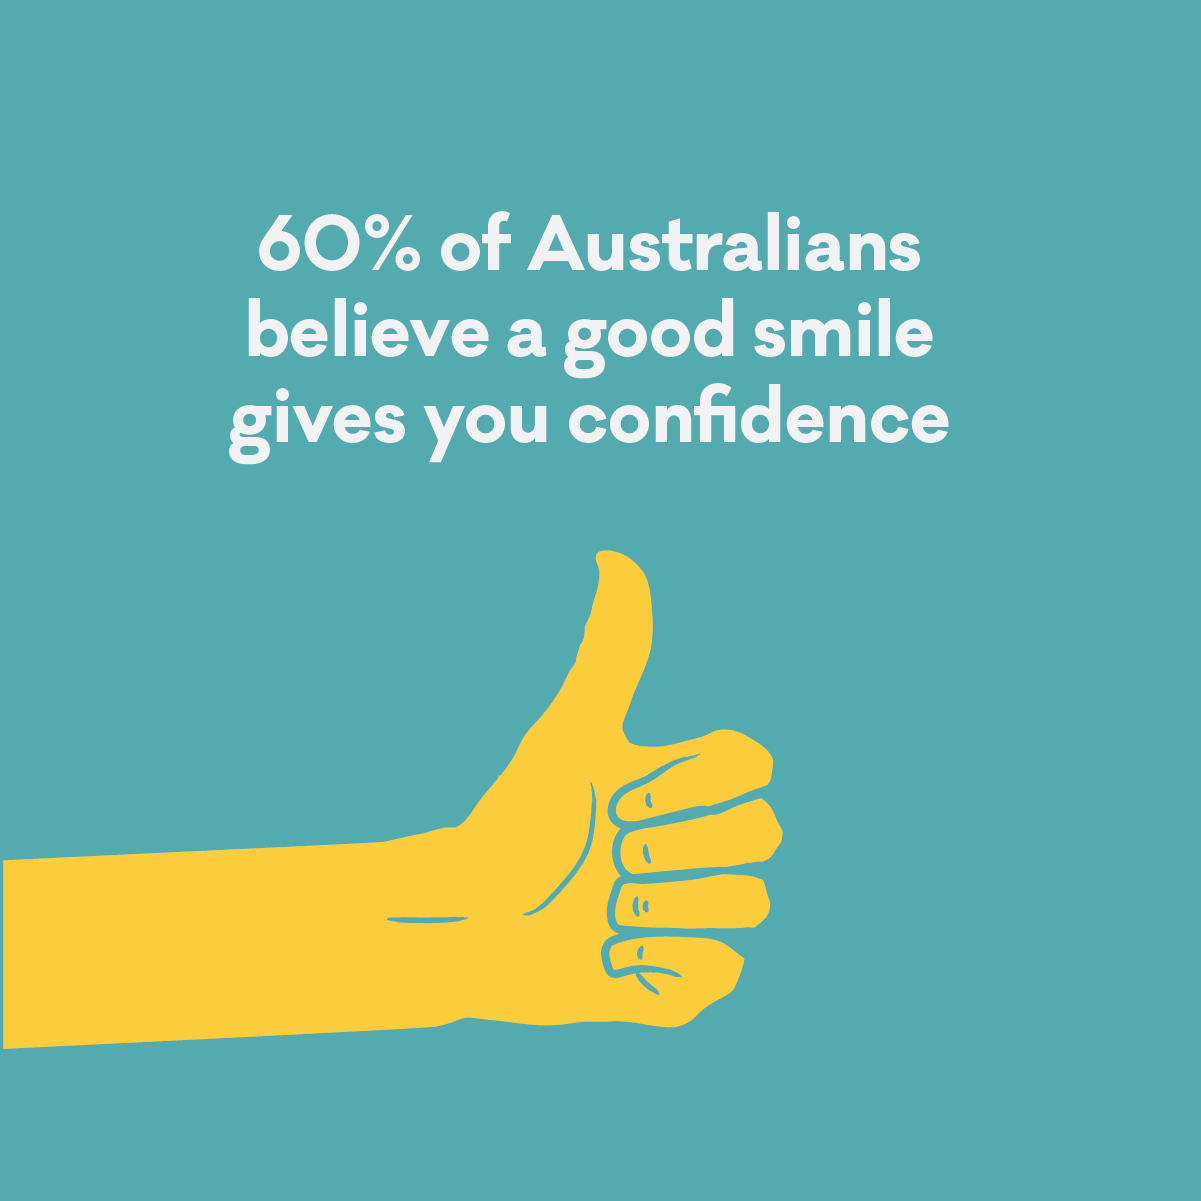 ASO Infographic - a good smile gives you confidence